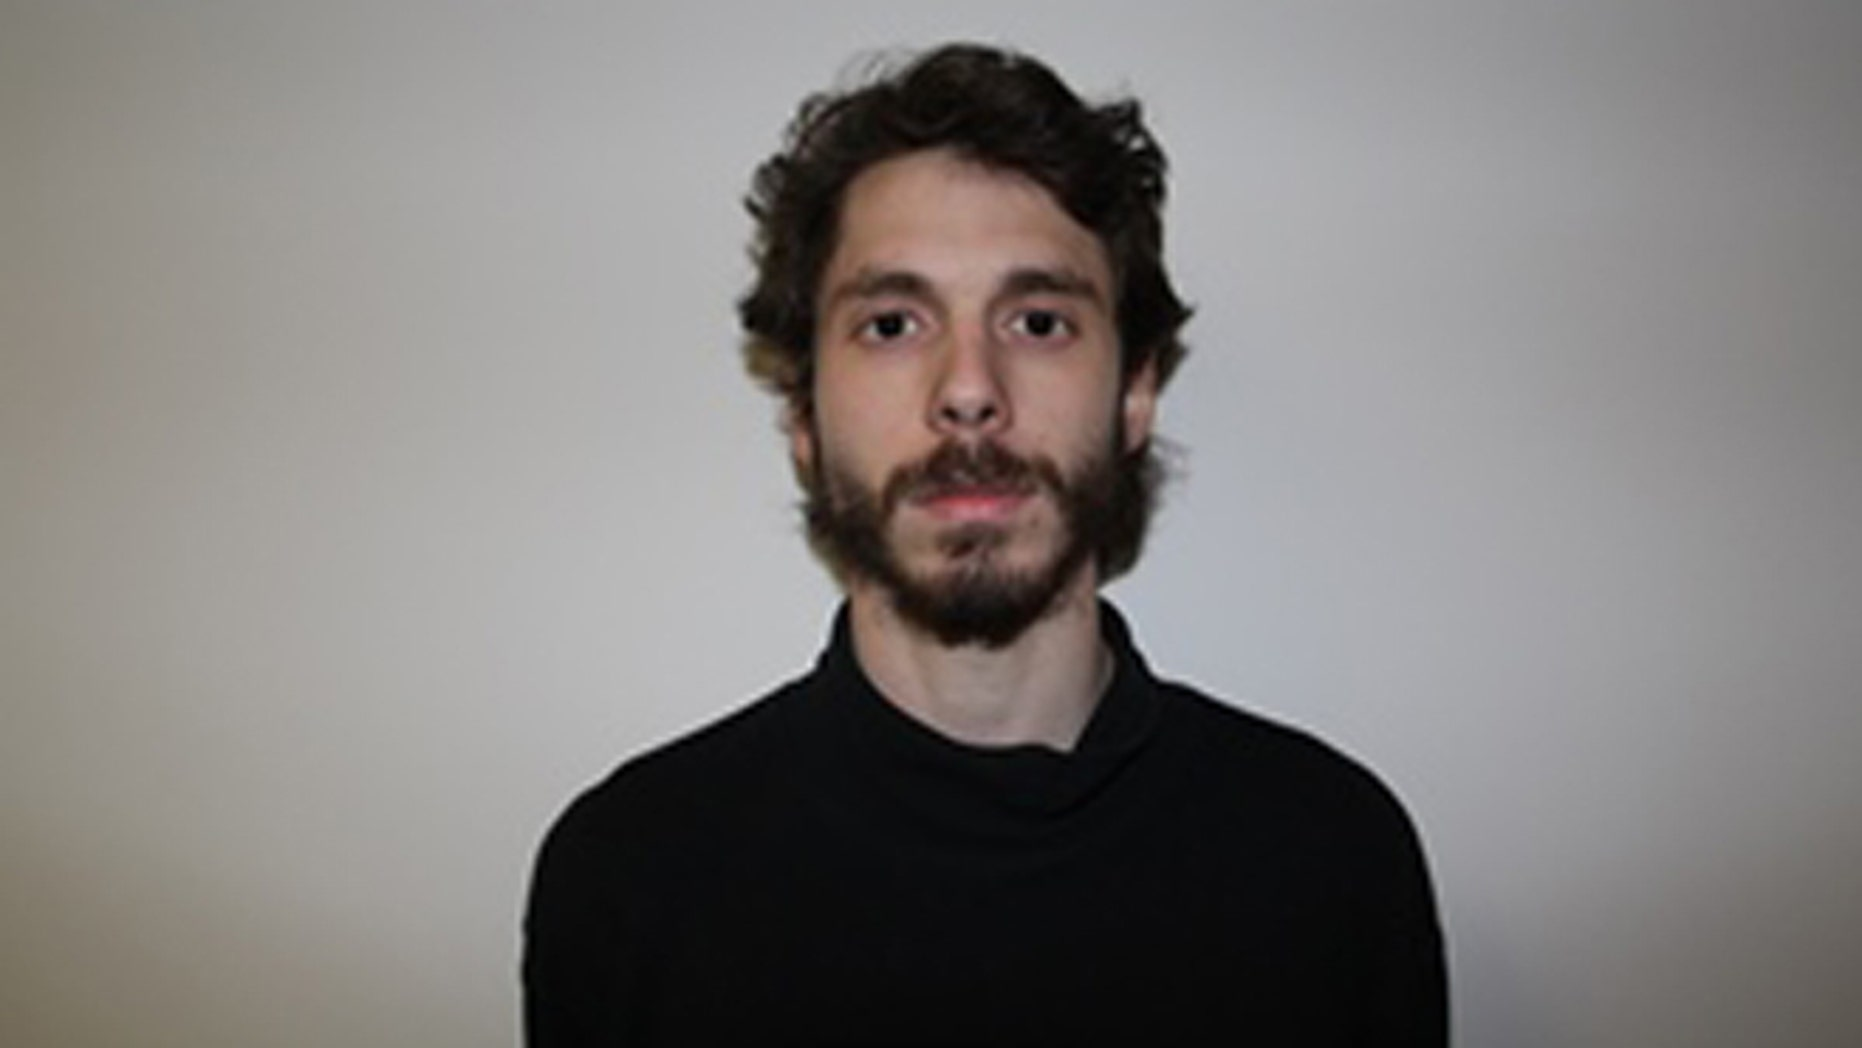 This image provided by the Middletown Police Department shows Eric Lonergan  of Rio de Janeiro. Lonergan is accused of possessing a controlled substance and illegally obtaining or supplying drugs. Lonergan was one of four Wesleyan University students arrested Tuesday Feb. 24, 2015 in connection with about a dozen hospitalizations among people who took a party drug known as Molly. (AP Photo/Middletown Police Department)